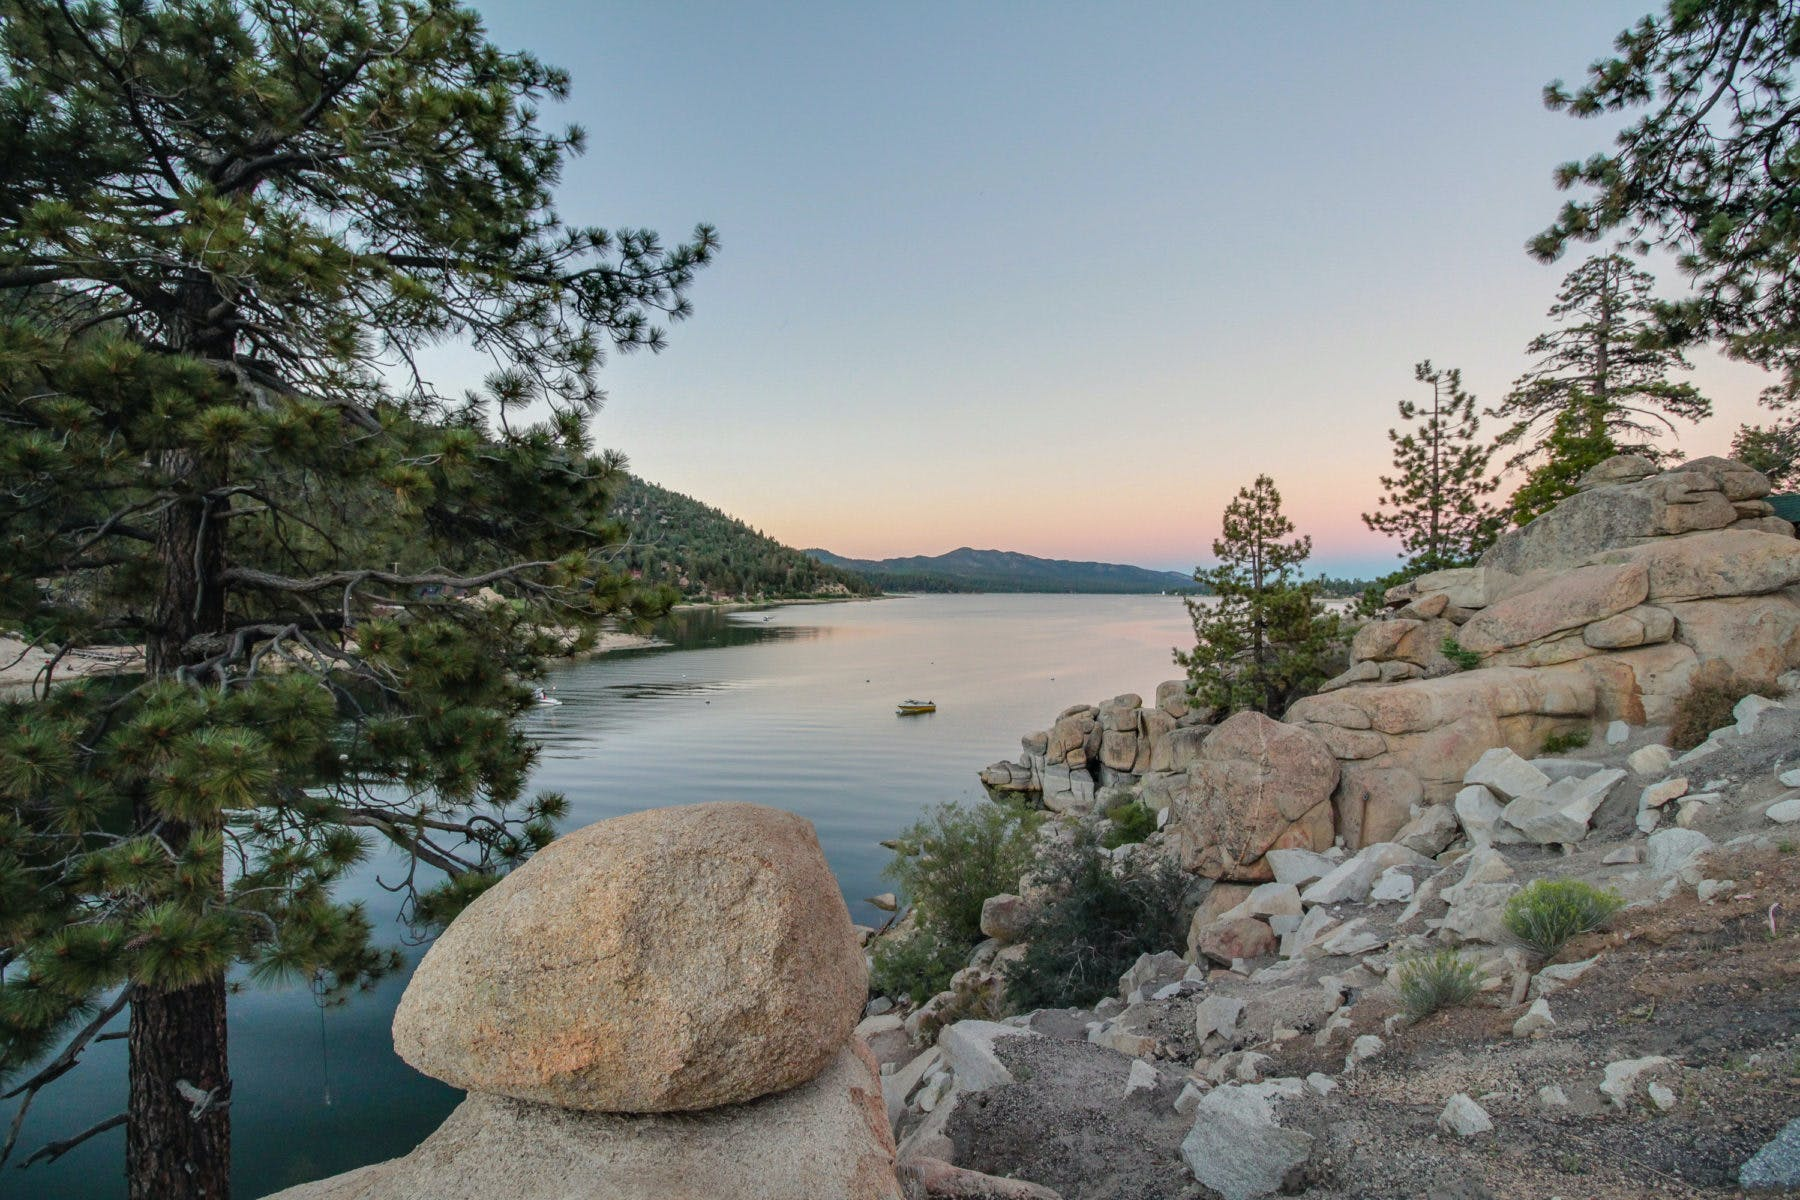 lake views from a trail in big bear